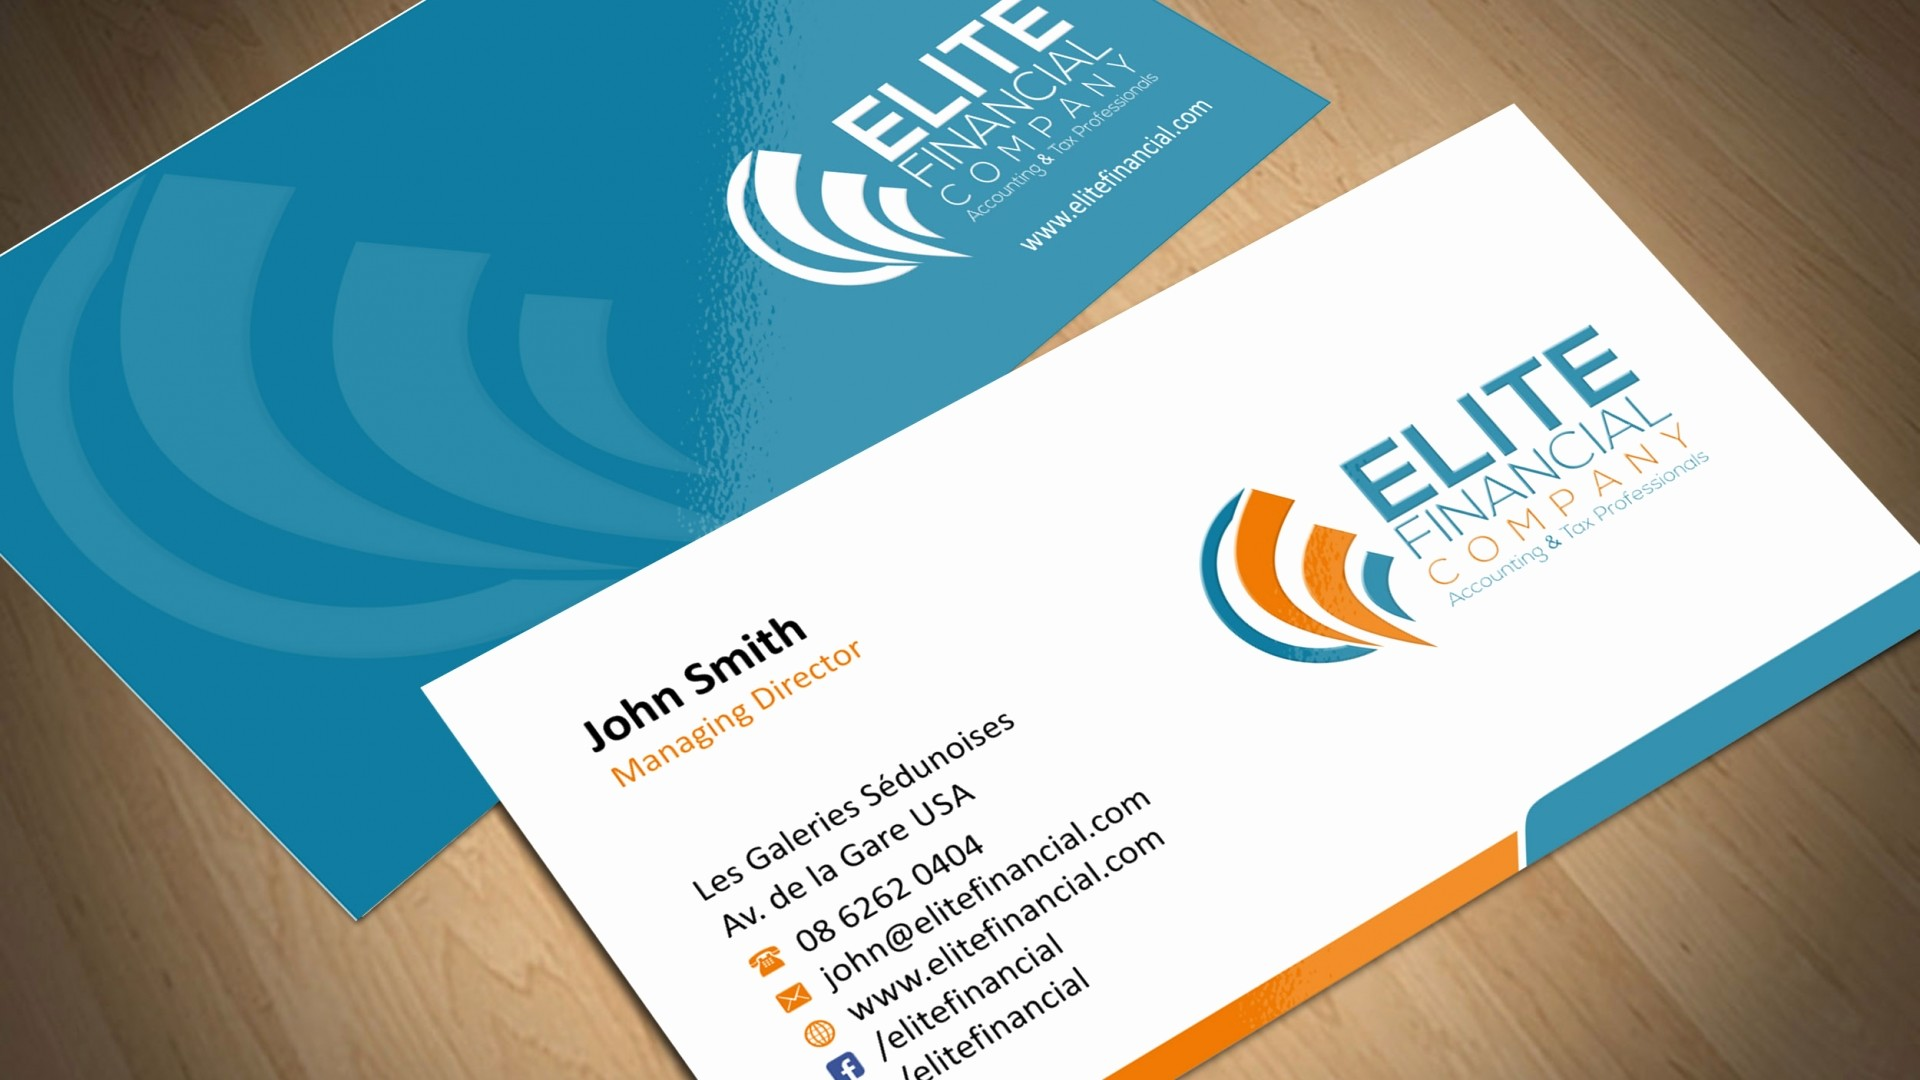 Res: 1920x1080, Tutoring Business Cards New Beautiful Professional Business Card Examples  Inspiration